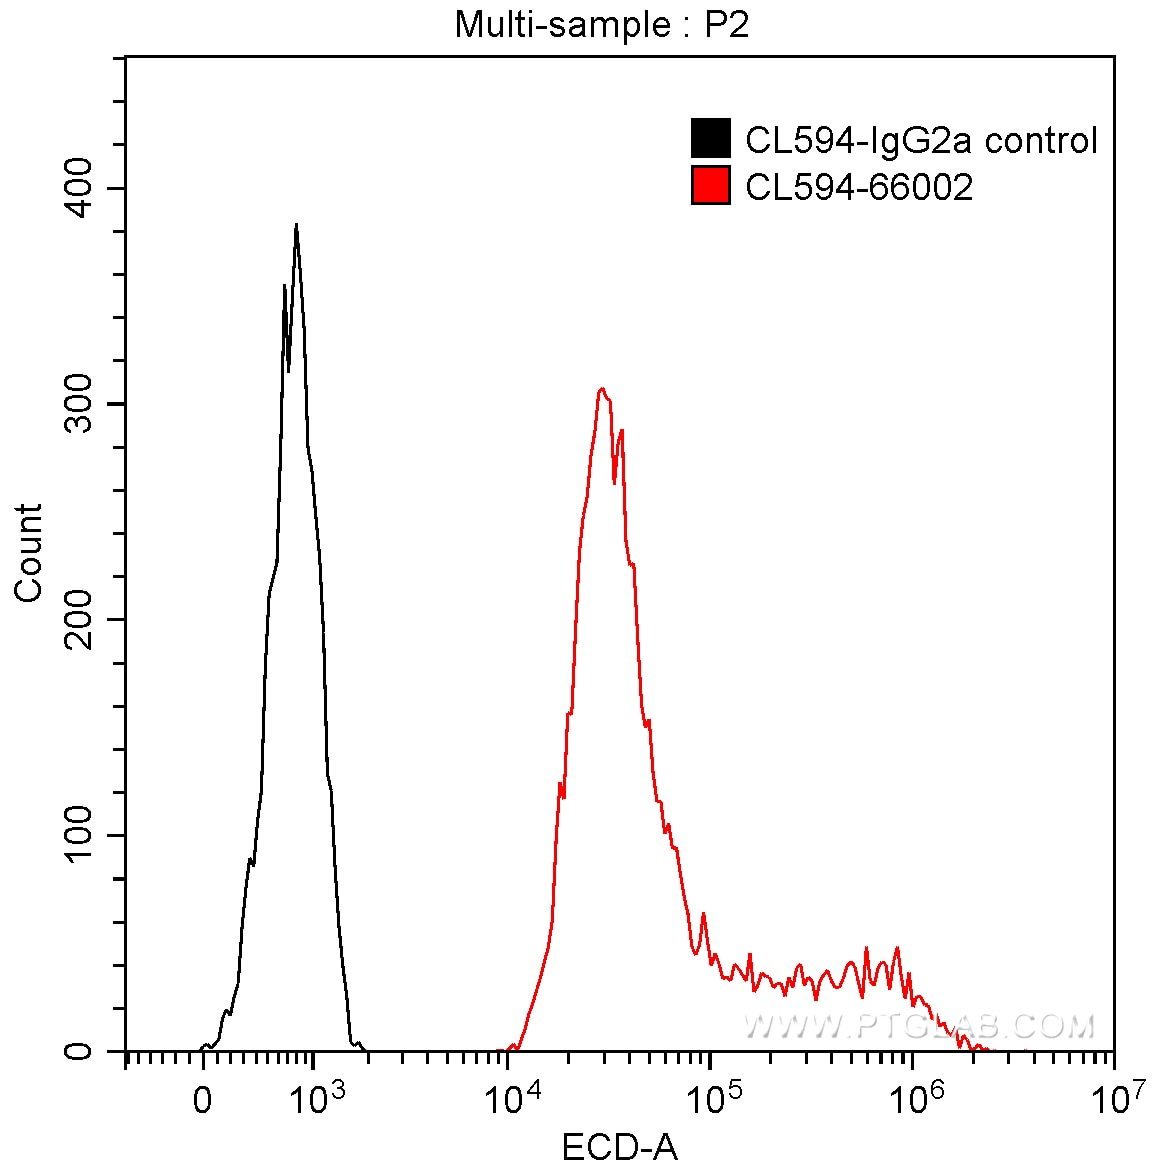 FC experiment of Transfected HEK-293 using CL594-66002